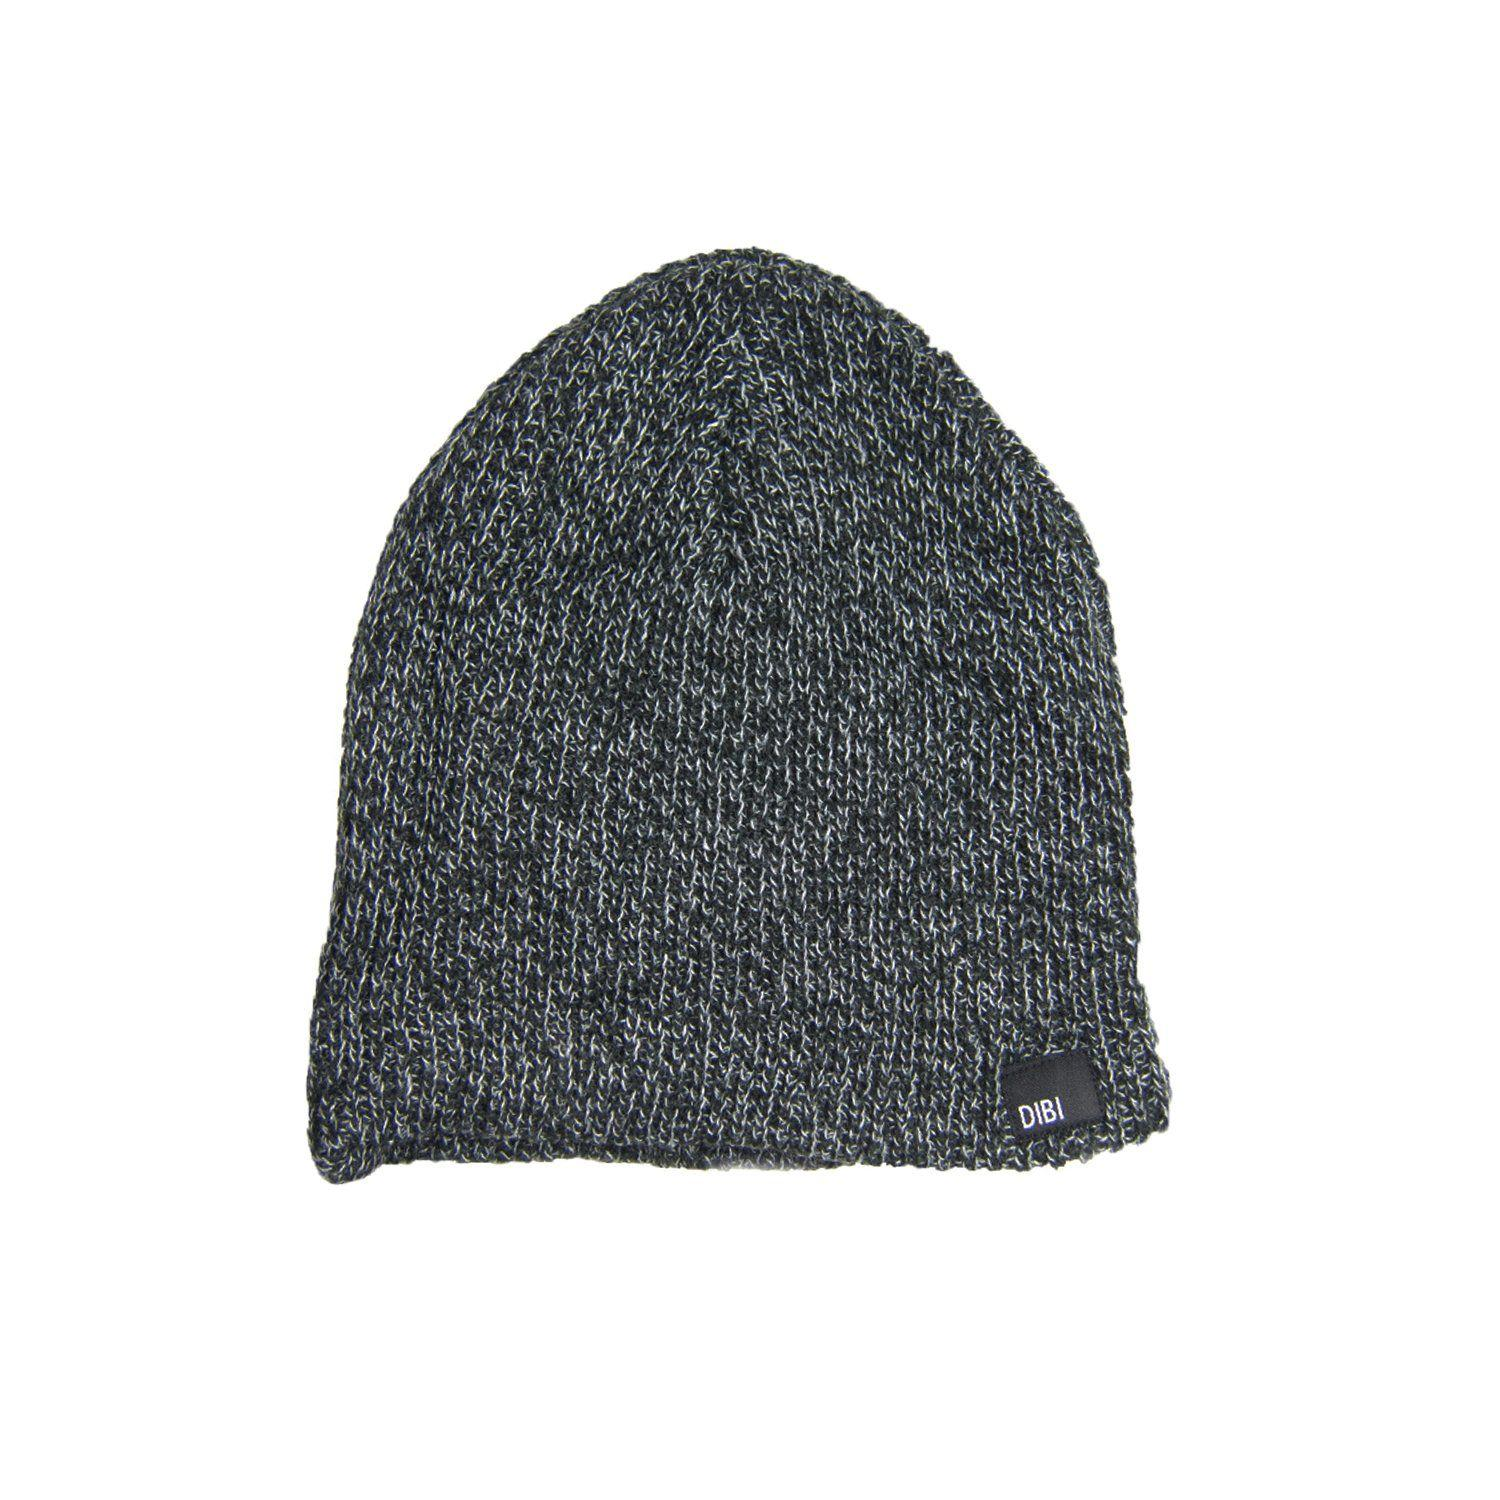 ec0f240dab6 Dibi - Black   Charcoal Slouchy Beanie for Men - Lyst. View fullscreen